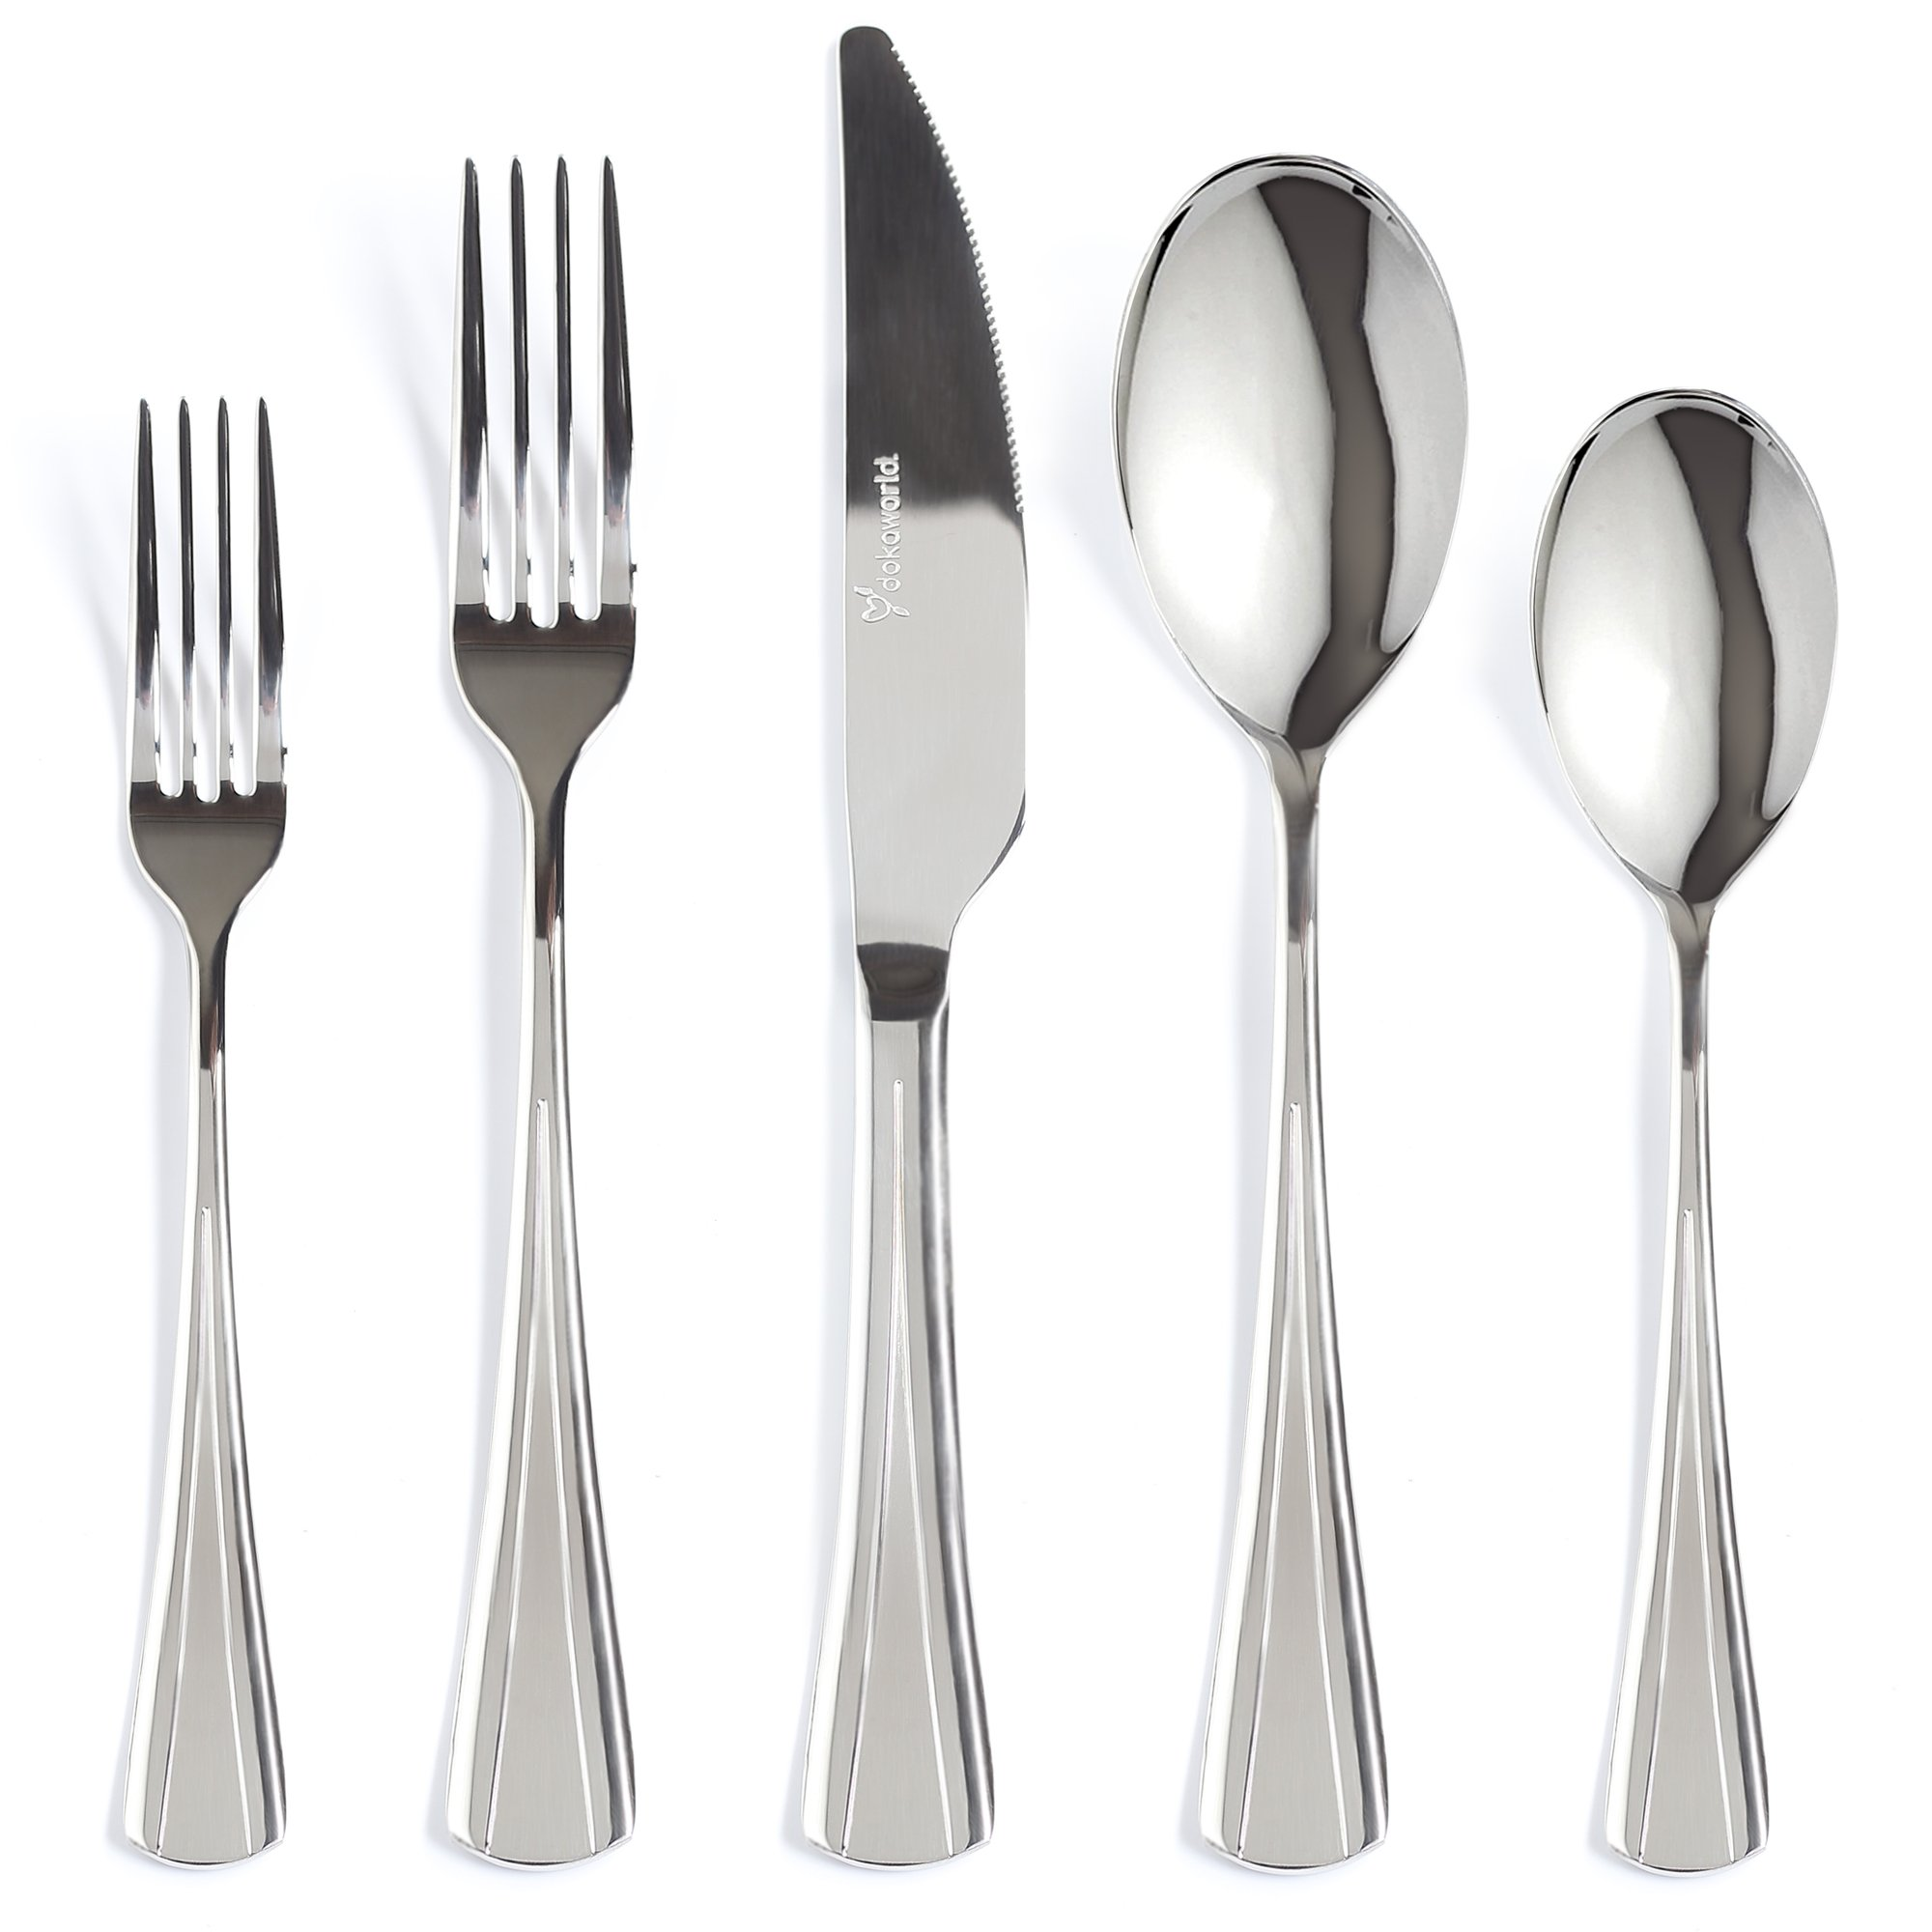 Silverware Set 20-Piece 18/10 Stainless Steel Flatware Set Mirror Polished Elegant Eating Utensil For 4 People Include Dessert Forks - Knife - Dinner Fork and Spoon Extra Thick - Dishwasher Safe